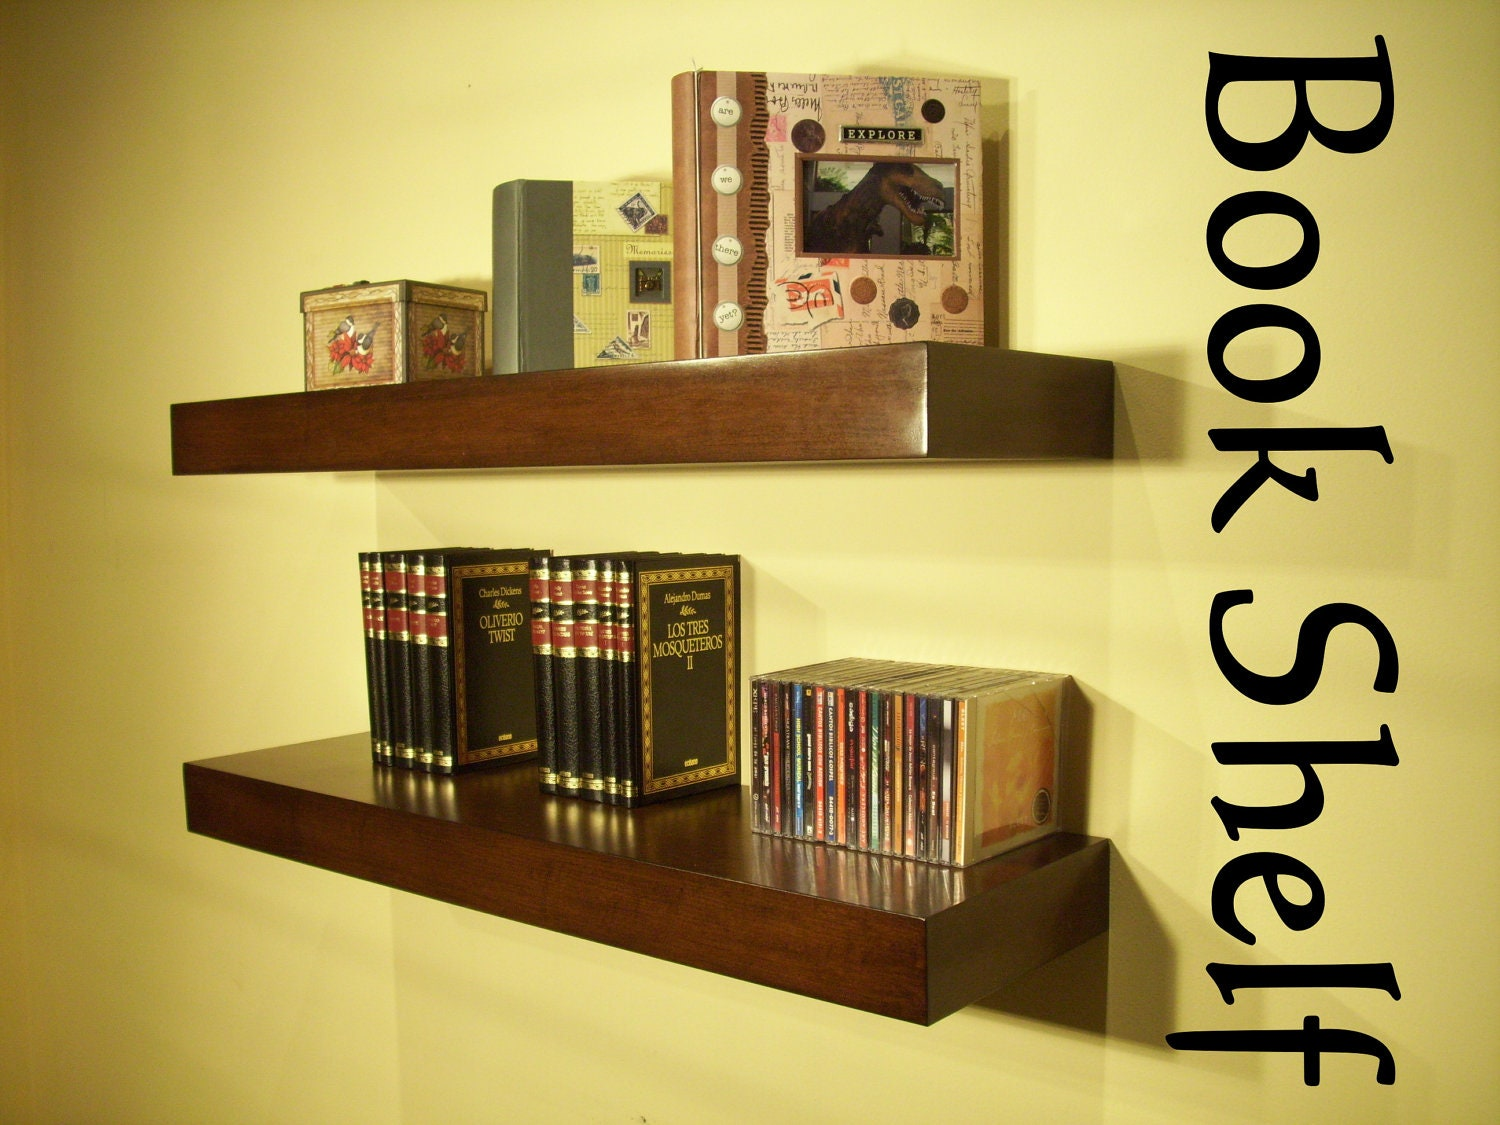 Superb img of 36 x 12 x 2 3/4 Floating Wood Shelves SET OF TWO by MrSelecta with #B4A817 color and 1500x1125 pixels